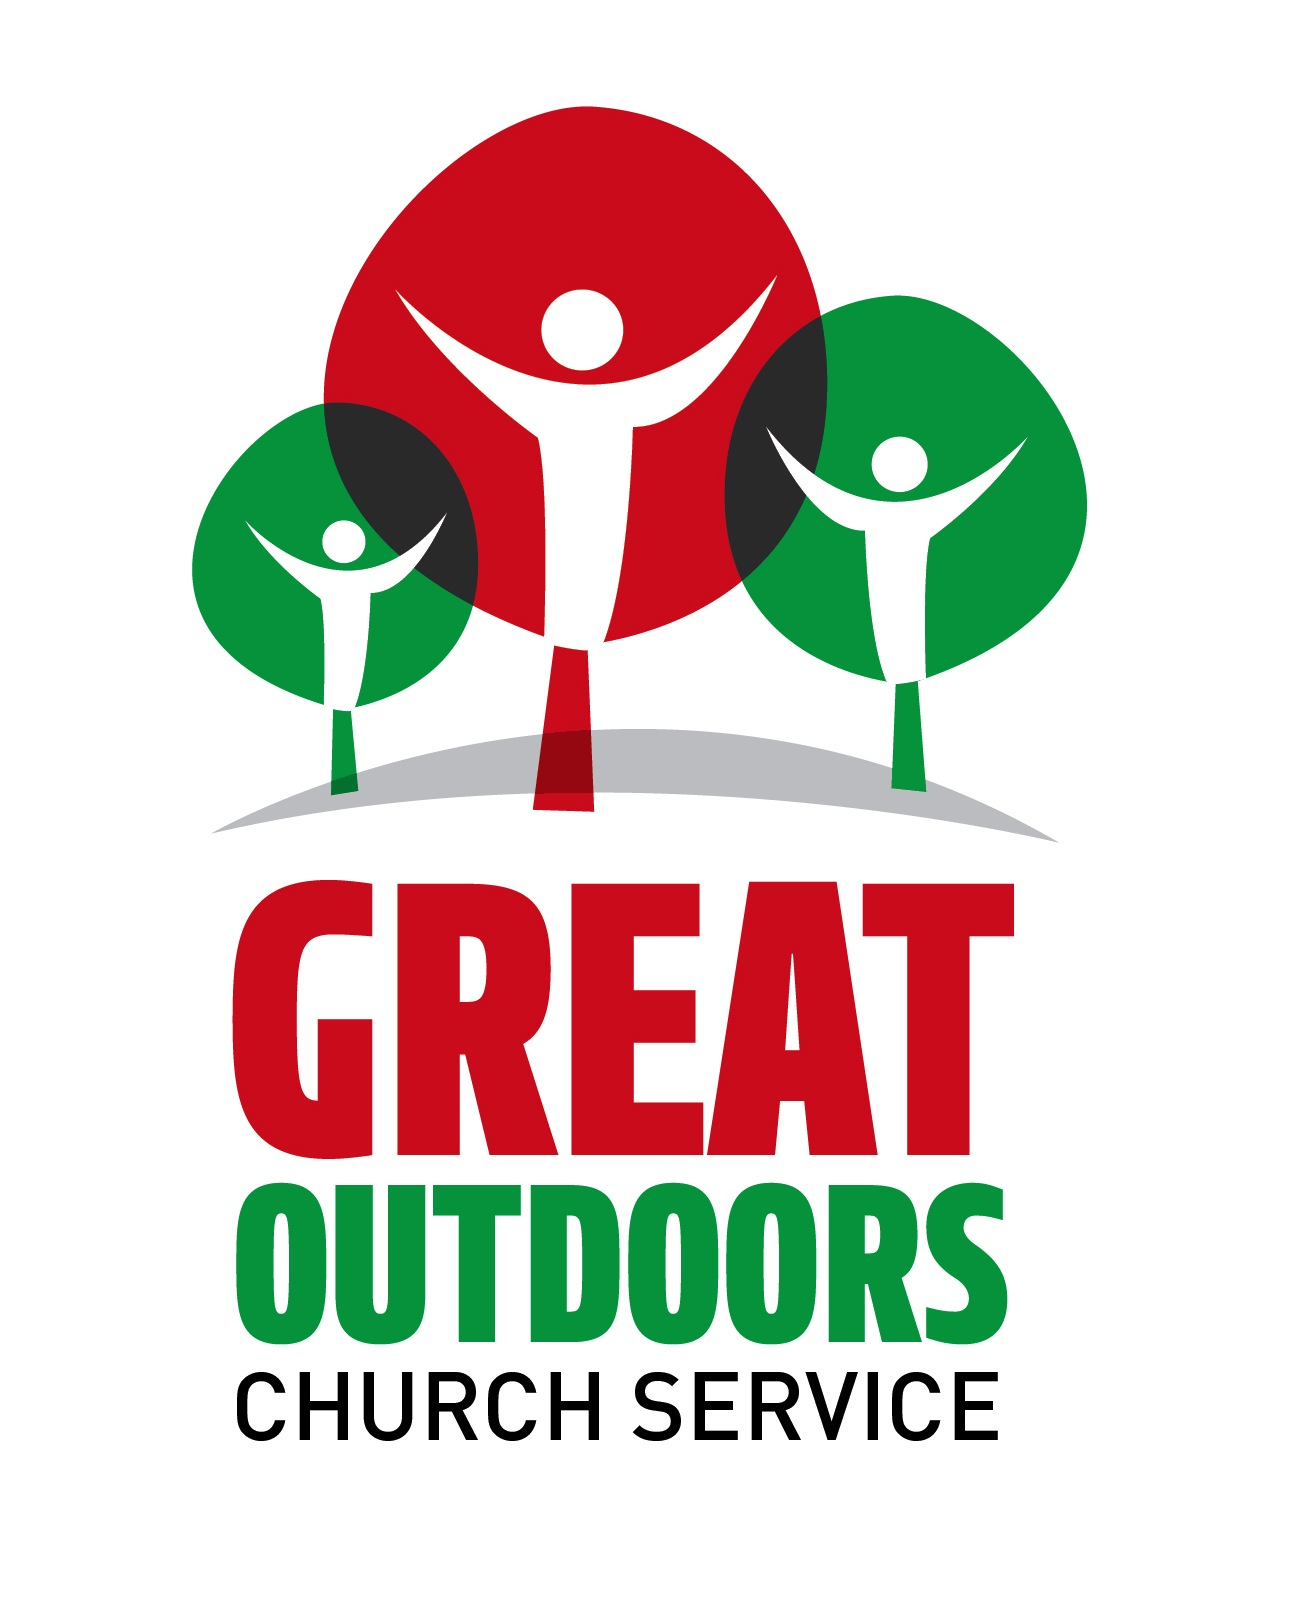 Outdoor clipart church service Church Service 2014 logo 25